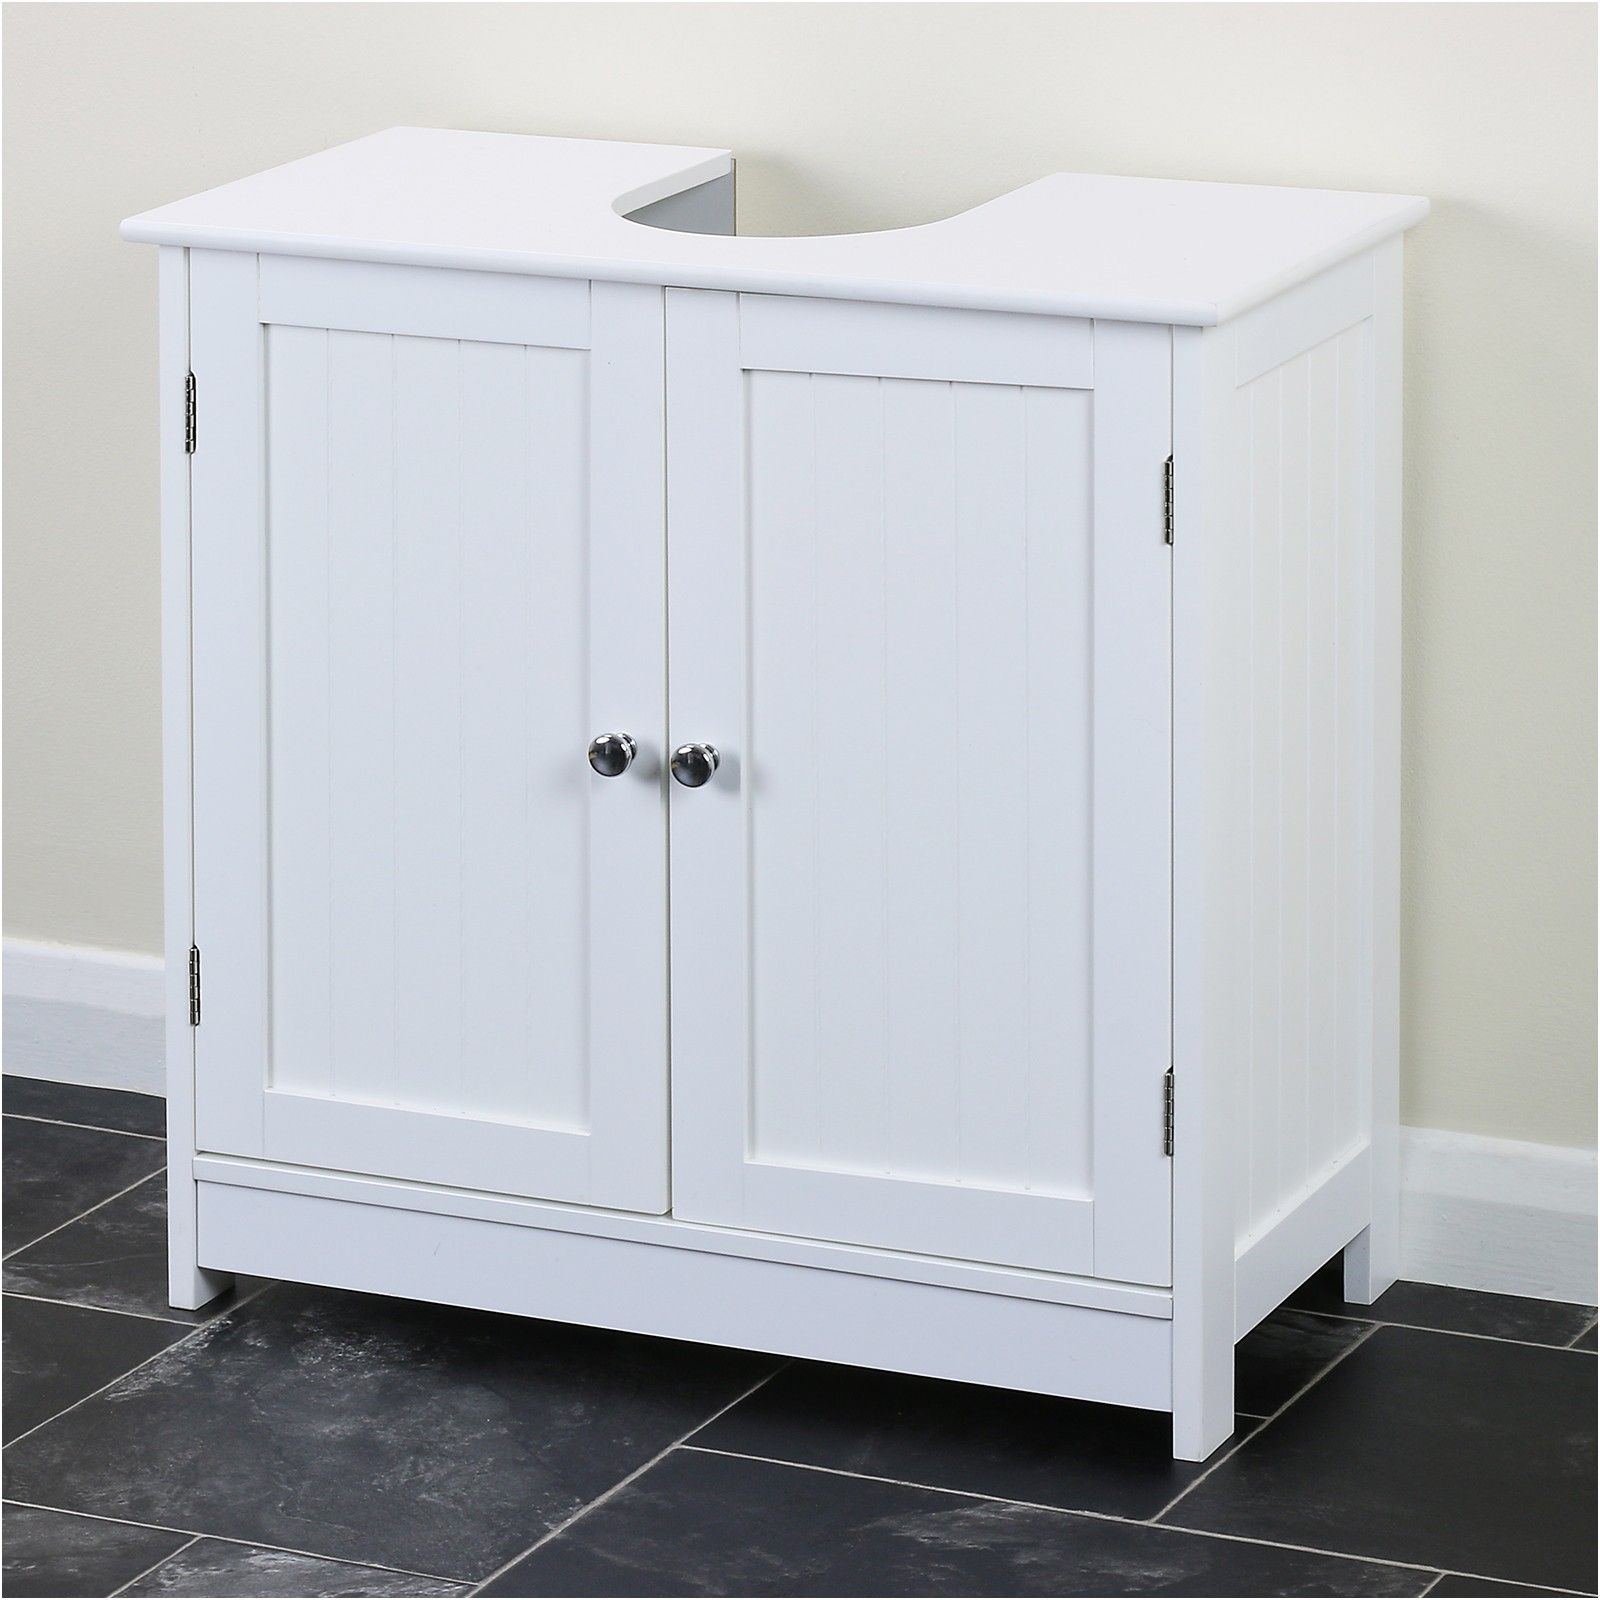 Under Sink Cabinet Ebay From White Under Sink Bathroom Storage Cabinet Bathroom Sink Storage Sink Cabinet Bathroom Storage Cabinet